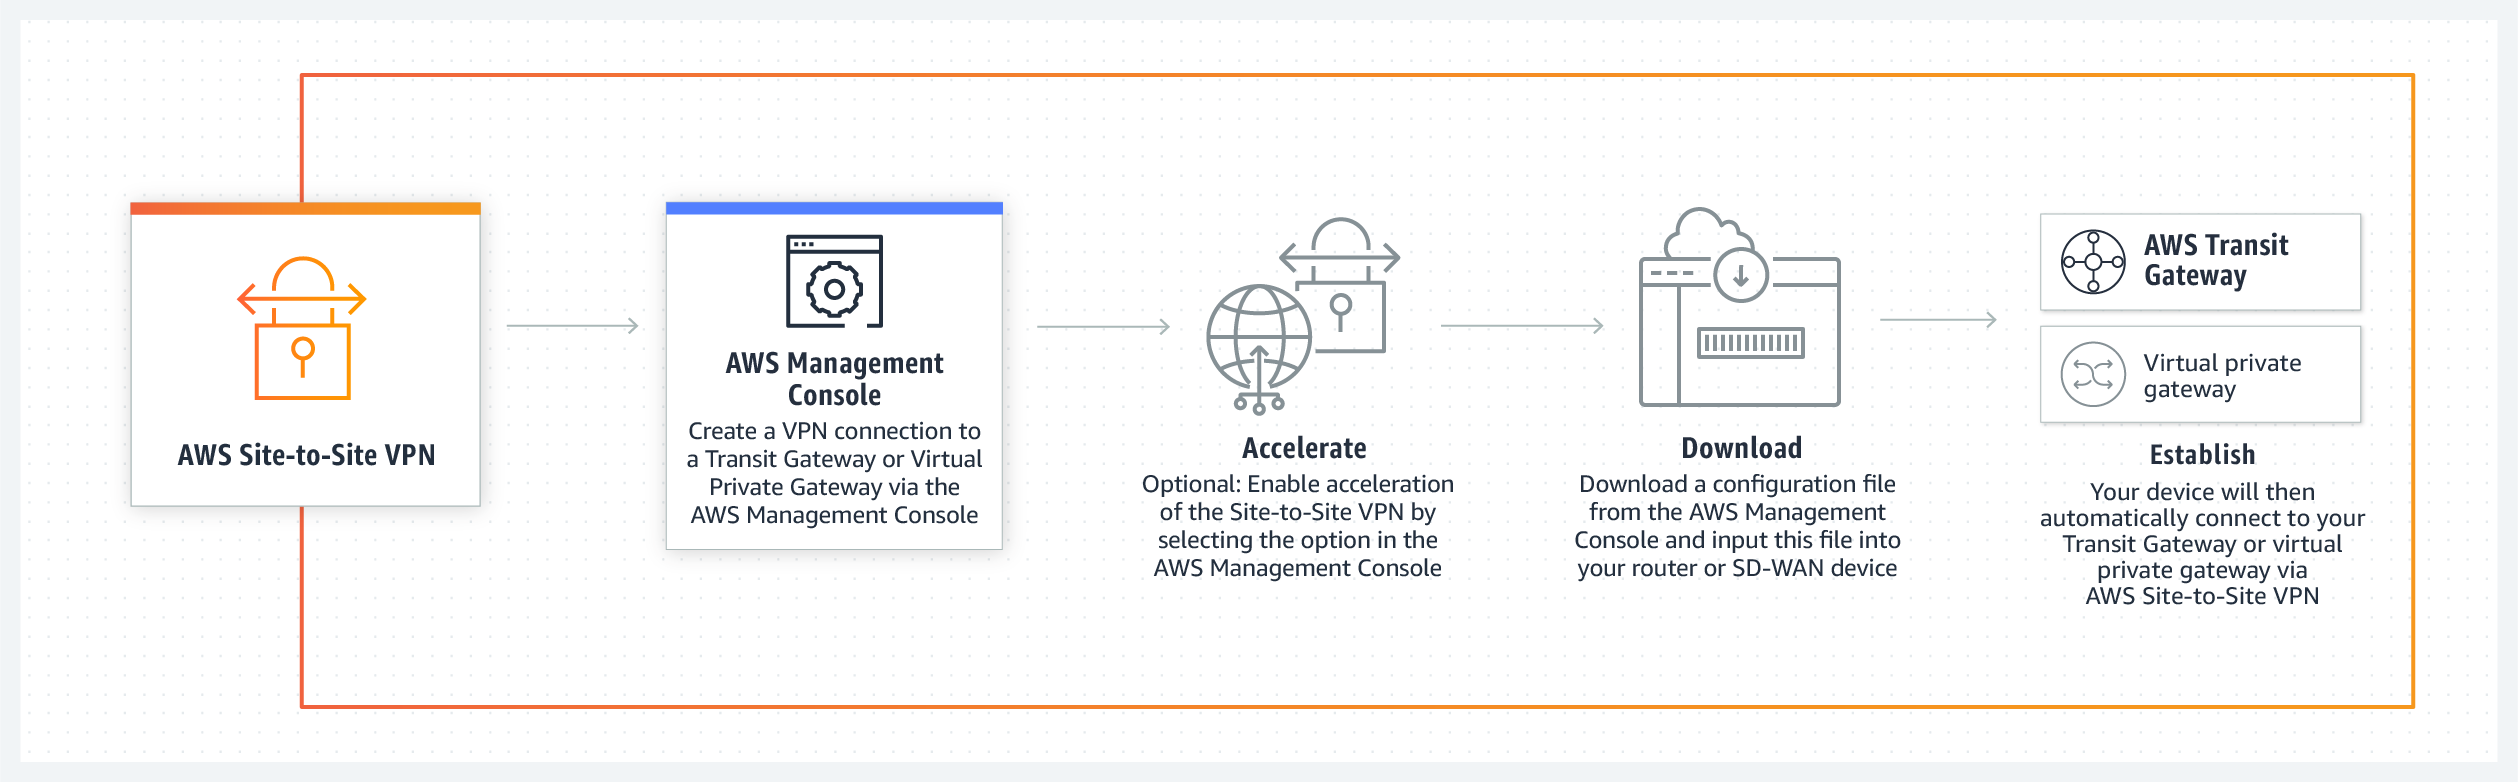 product-page-diagram_Accelerated-Site-to-Site-VPN_How-it-Works@2x